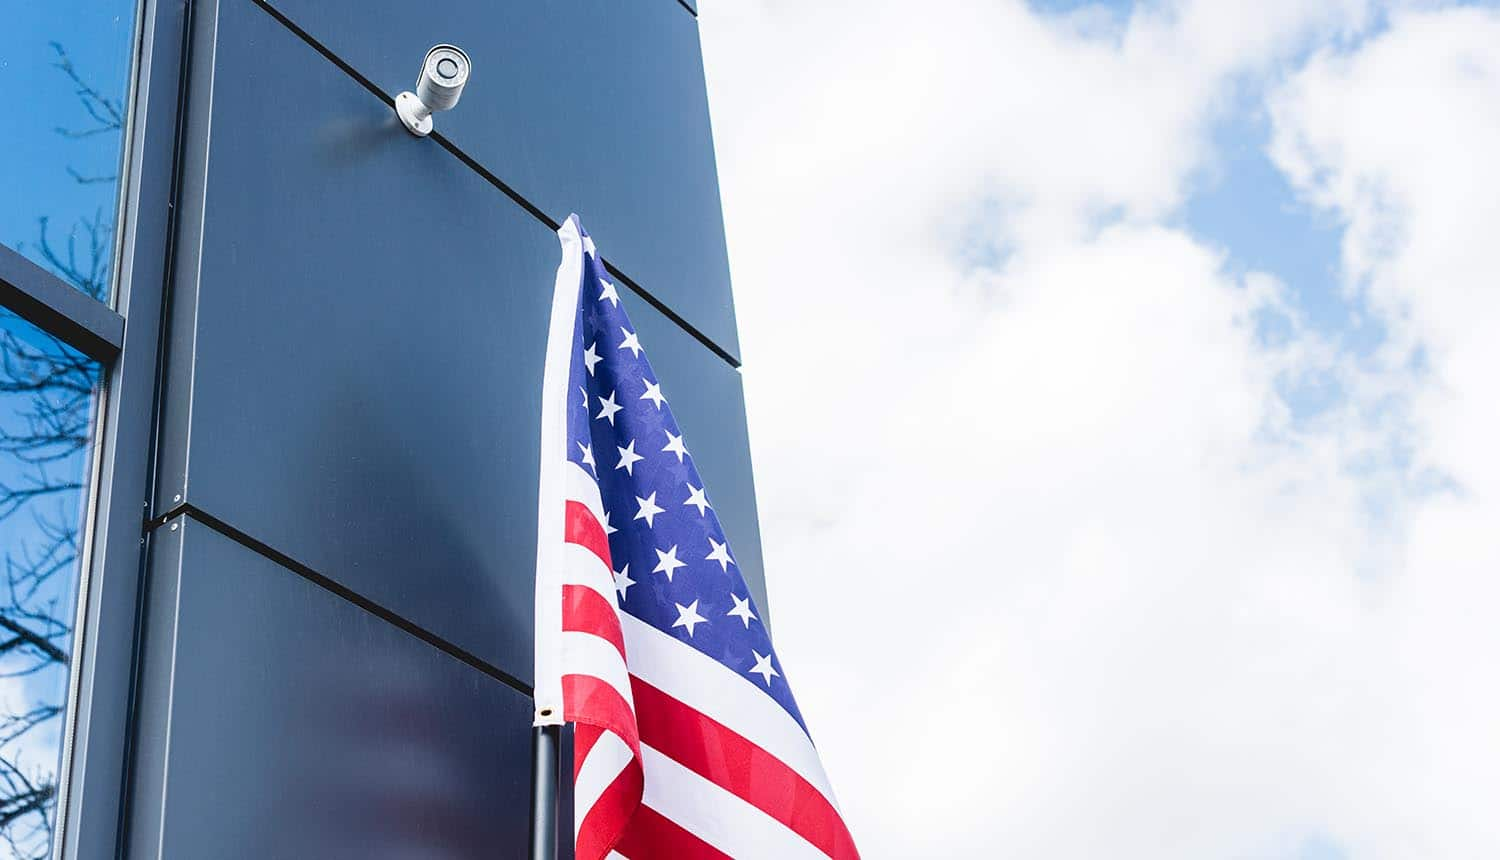 American flag near building showing the proposed amendment to PATRIOT Act to limit FBI's access to search and web browsing history